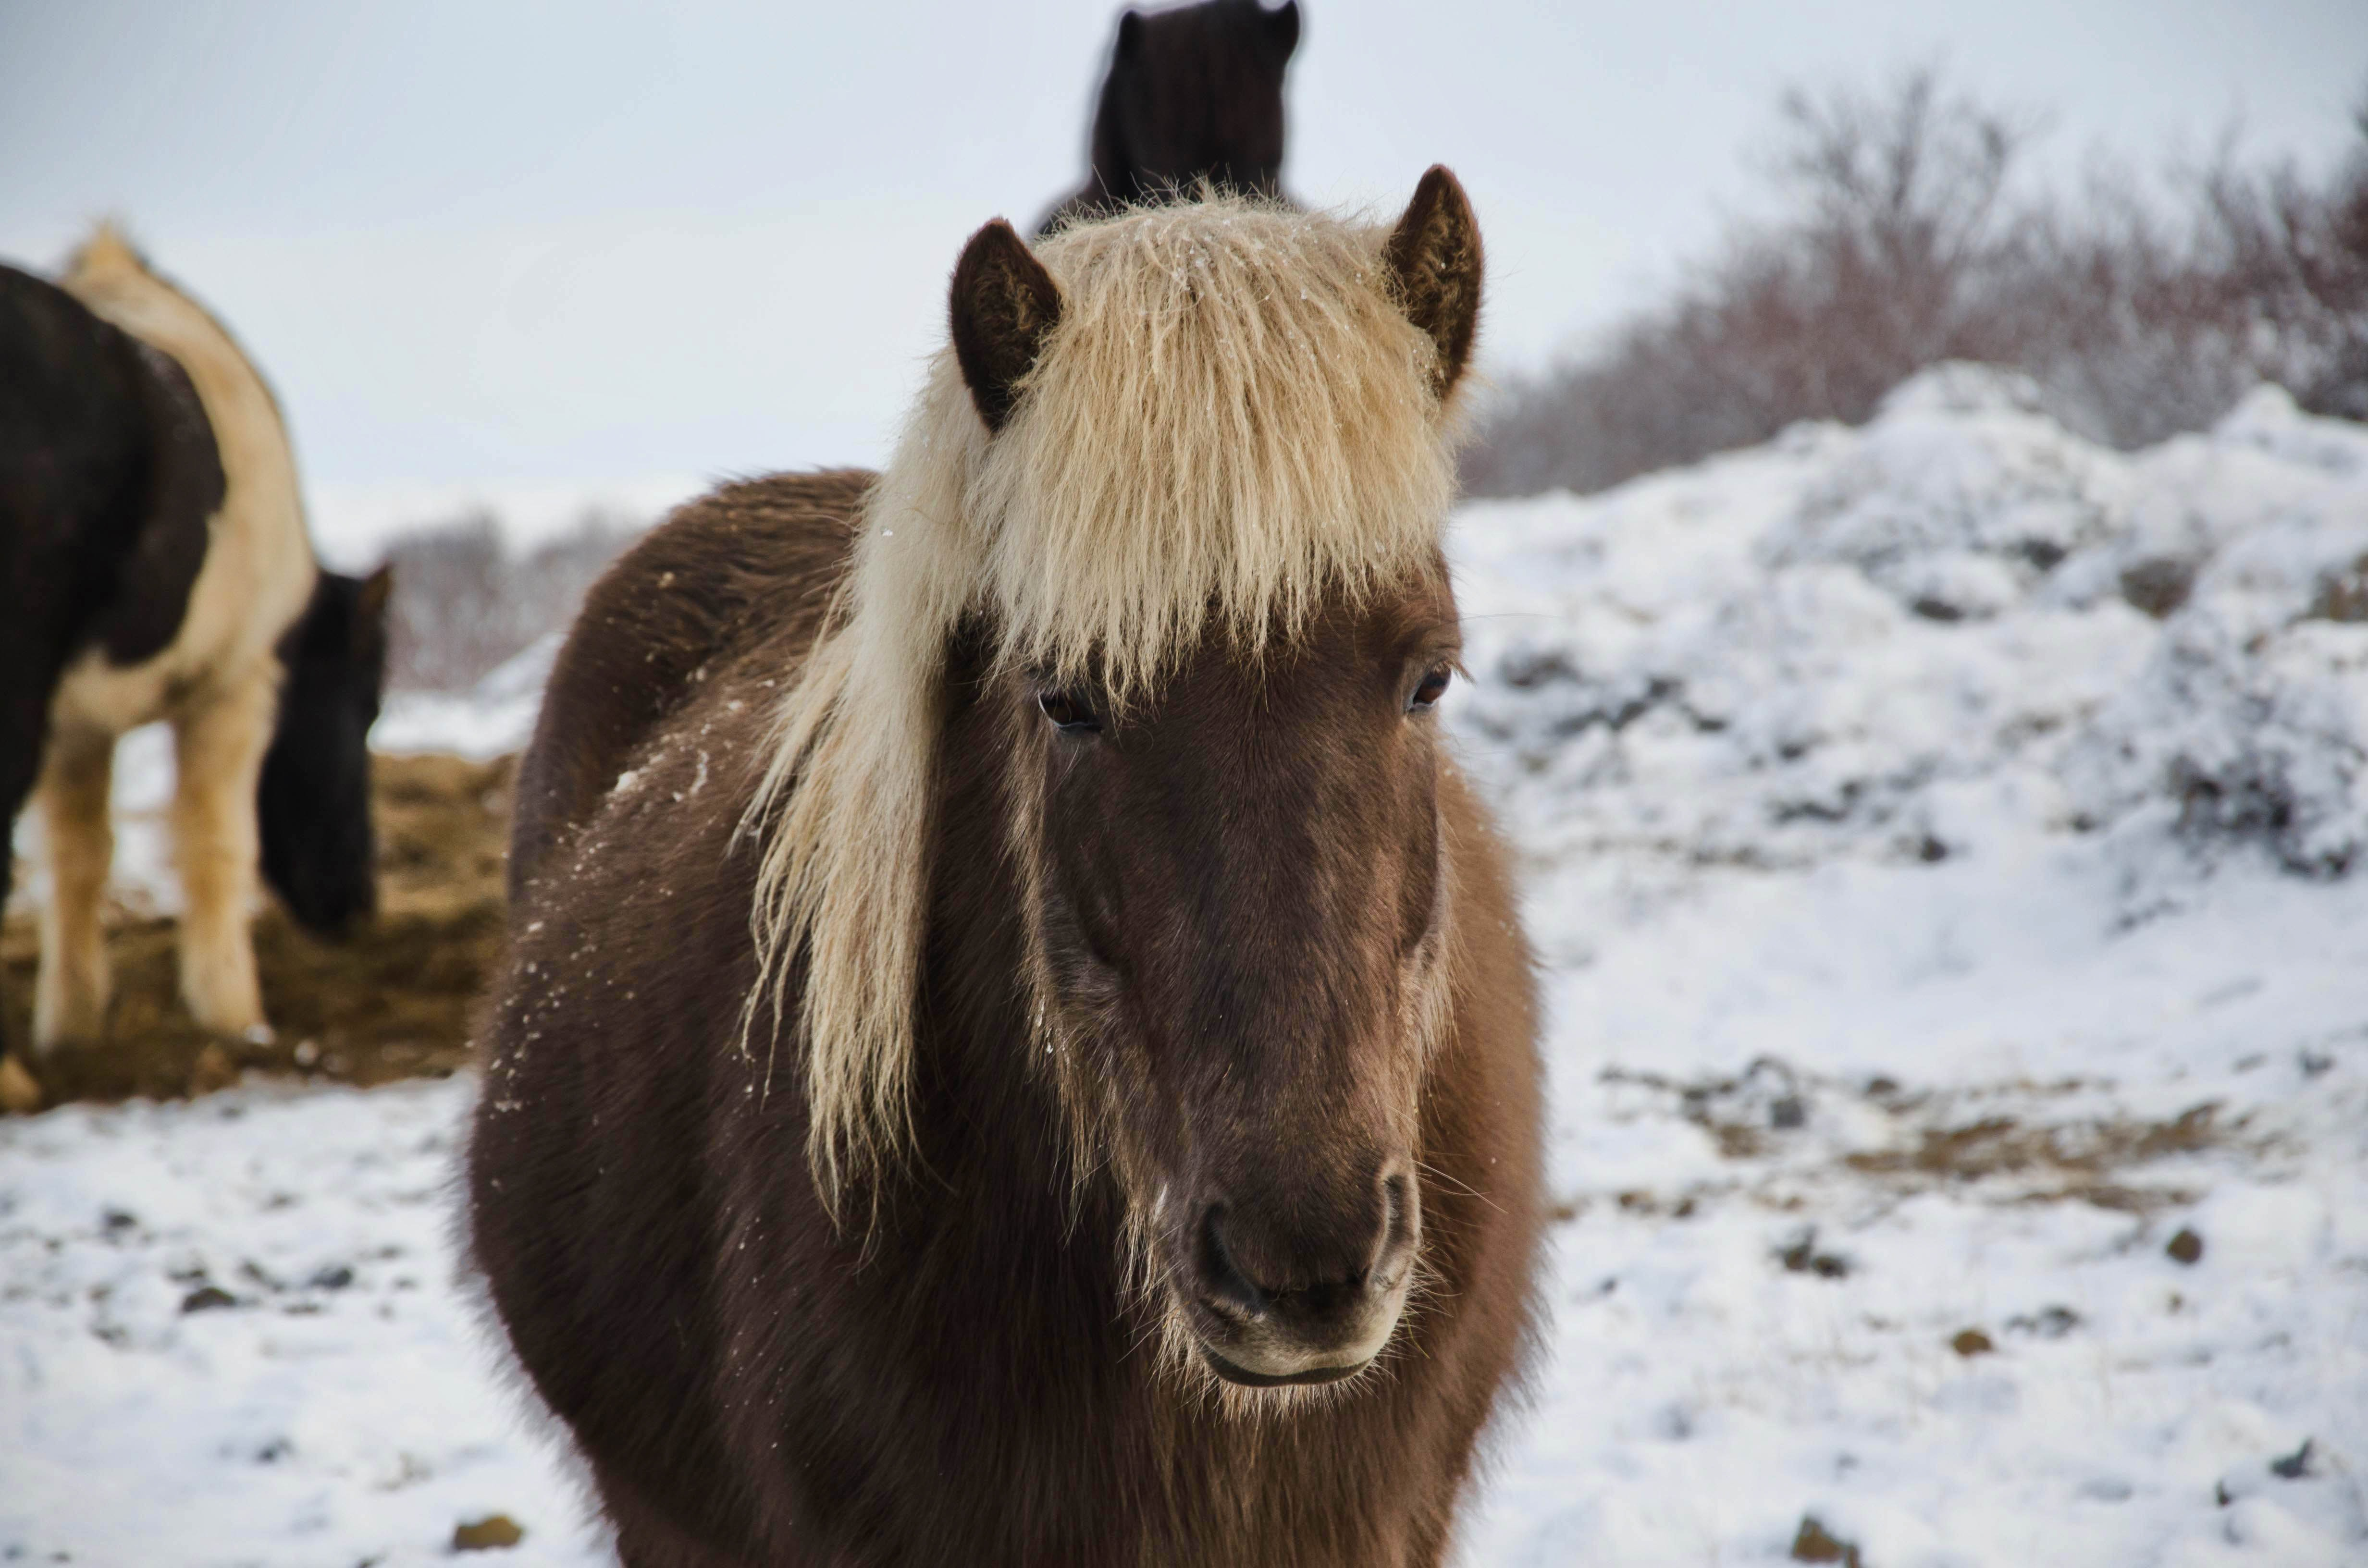 black horse on snow covered ground